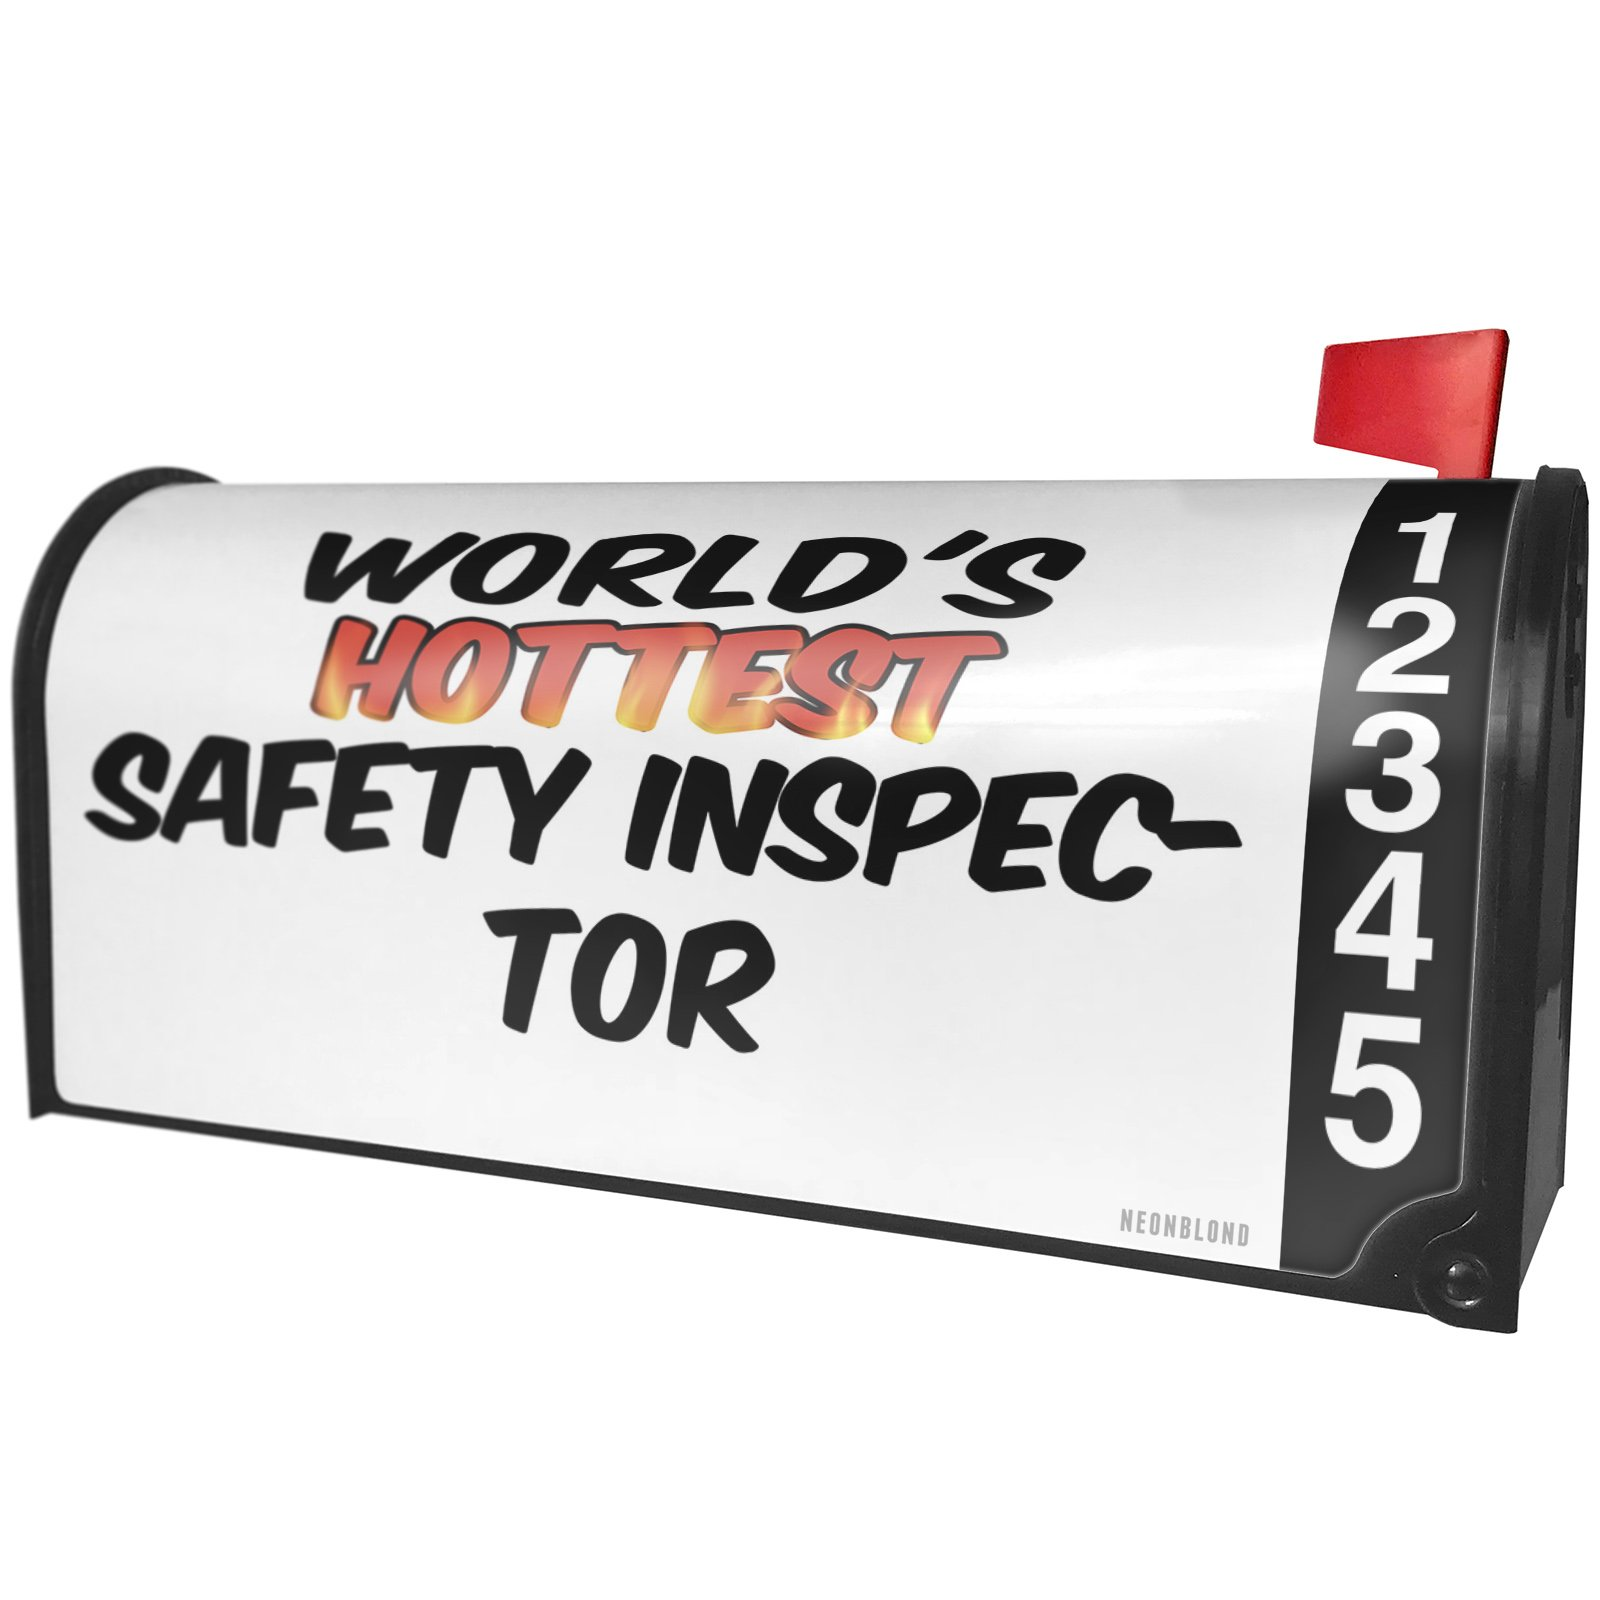 NEONBLOND Worlds hottest Safety Inspector Magnetic Mailbox Cover Custom Numbers